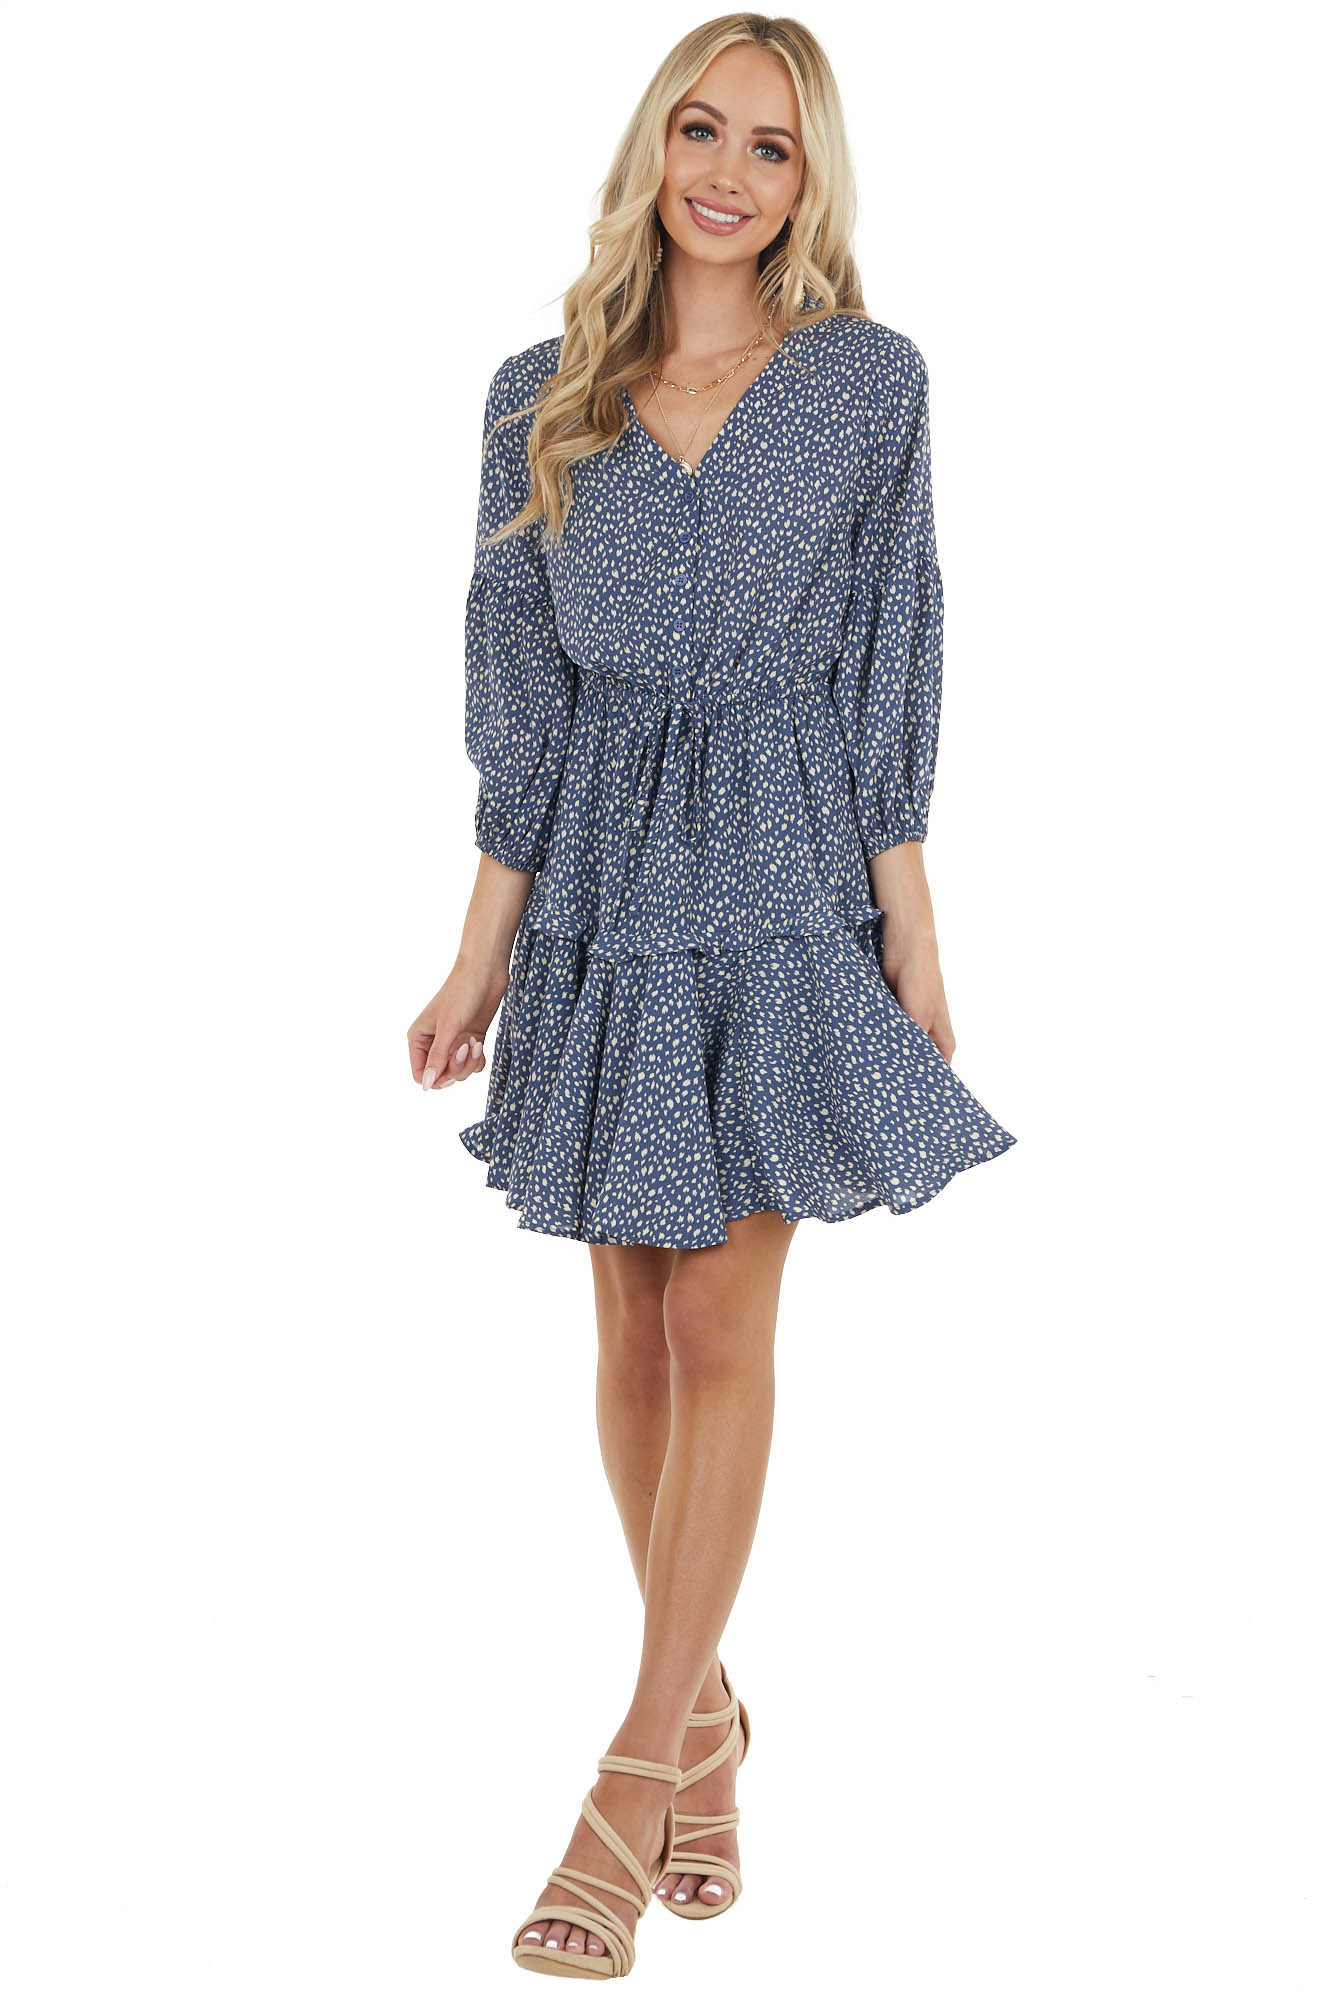 Dusty Blue Printed Button Down Short Dress with 3/4 Sleeves